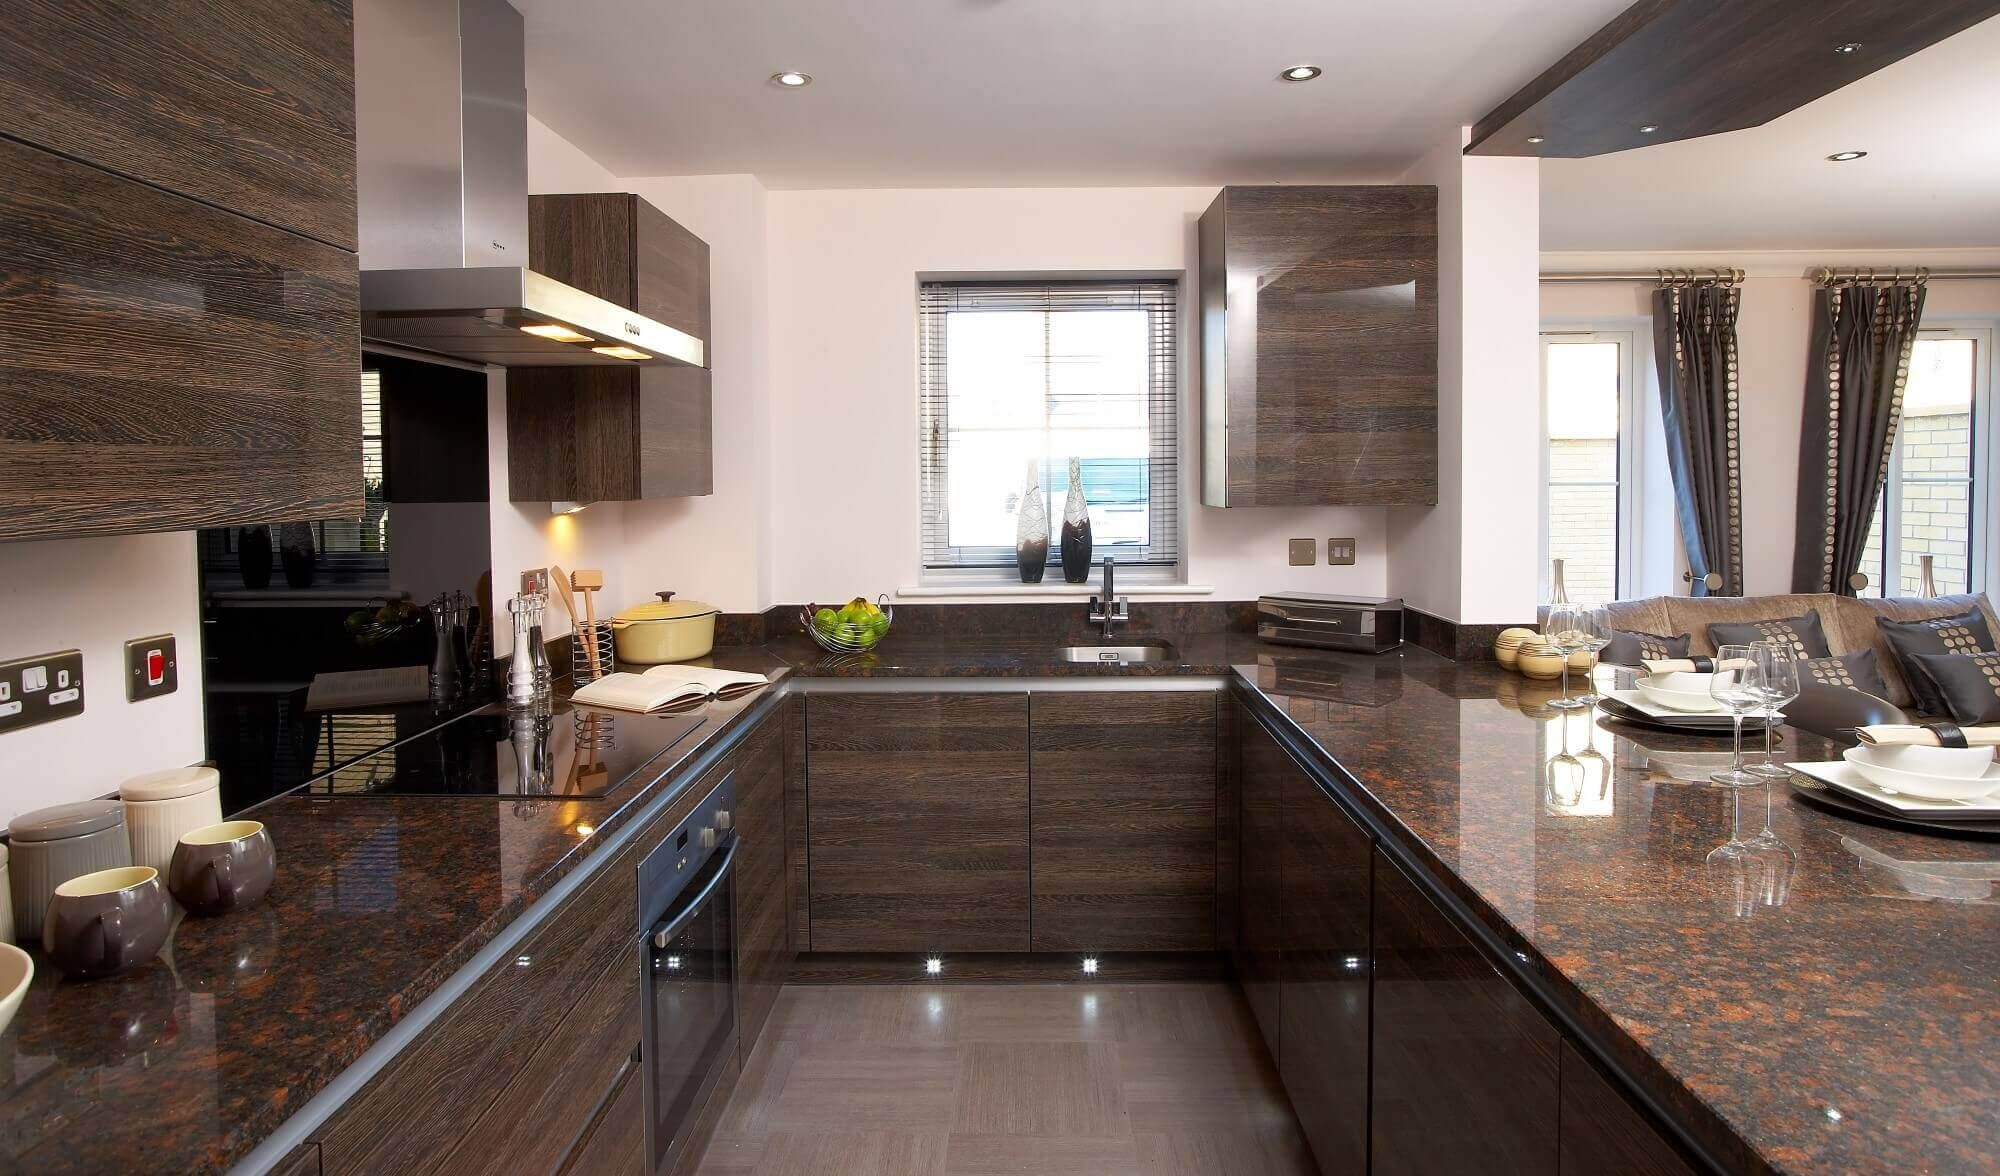 78 Great Looking Modern Kitchen Gallery Sinks Islands Appliances Lights Backsplashes Cabinets Floors And More Kitchen Design Pictures Small U Shaped Kitchens U Shaped Kitchen